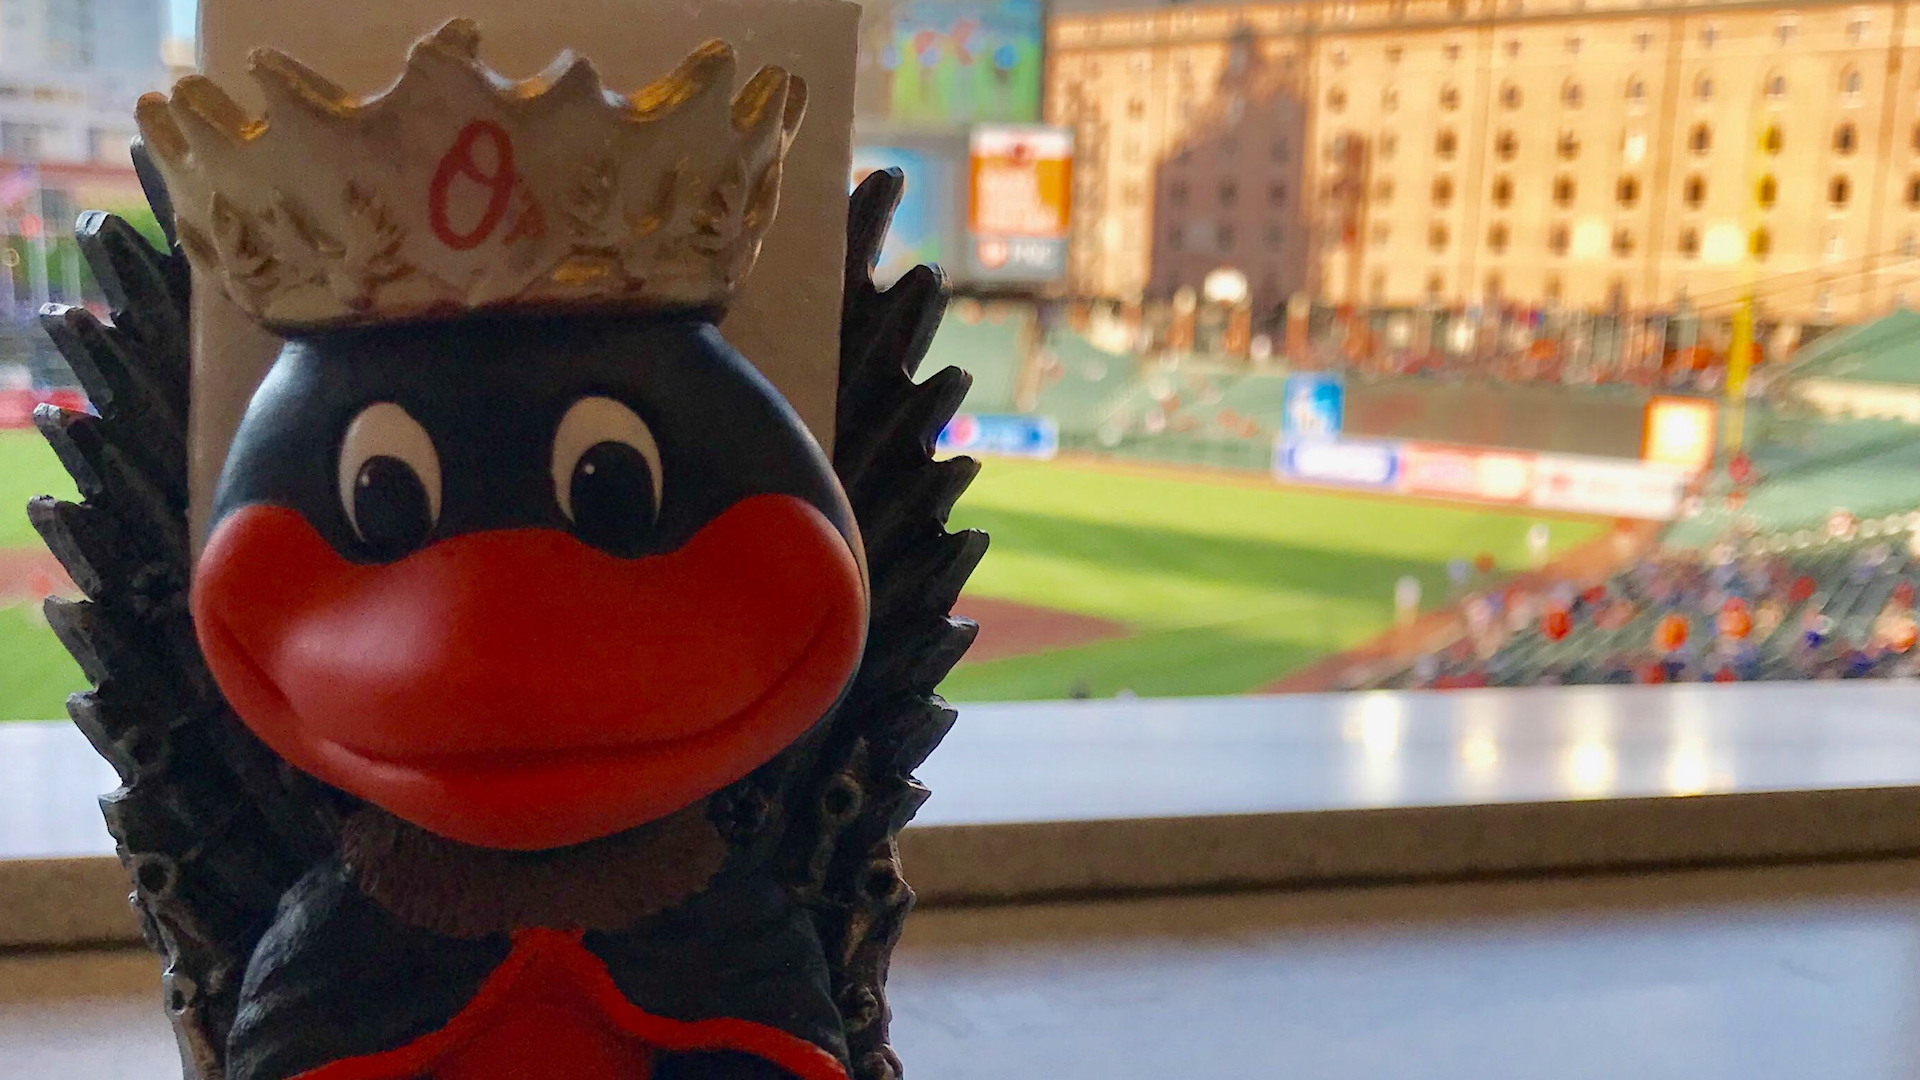 After finale, Orioles vote for which teammate should sit on the Iron Throne